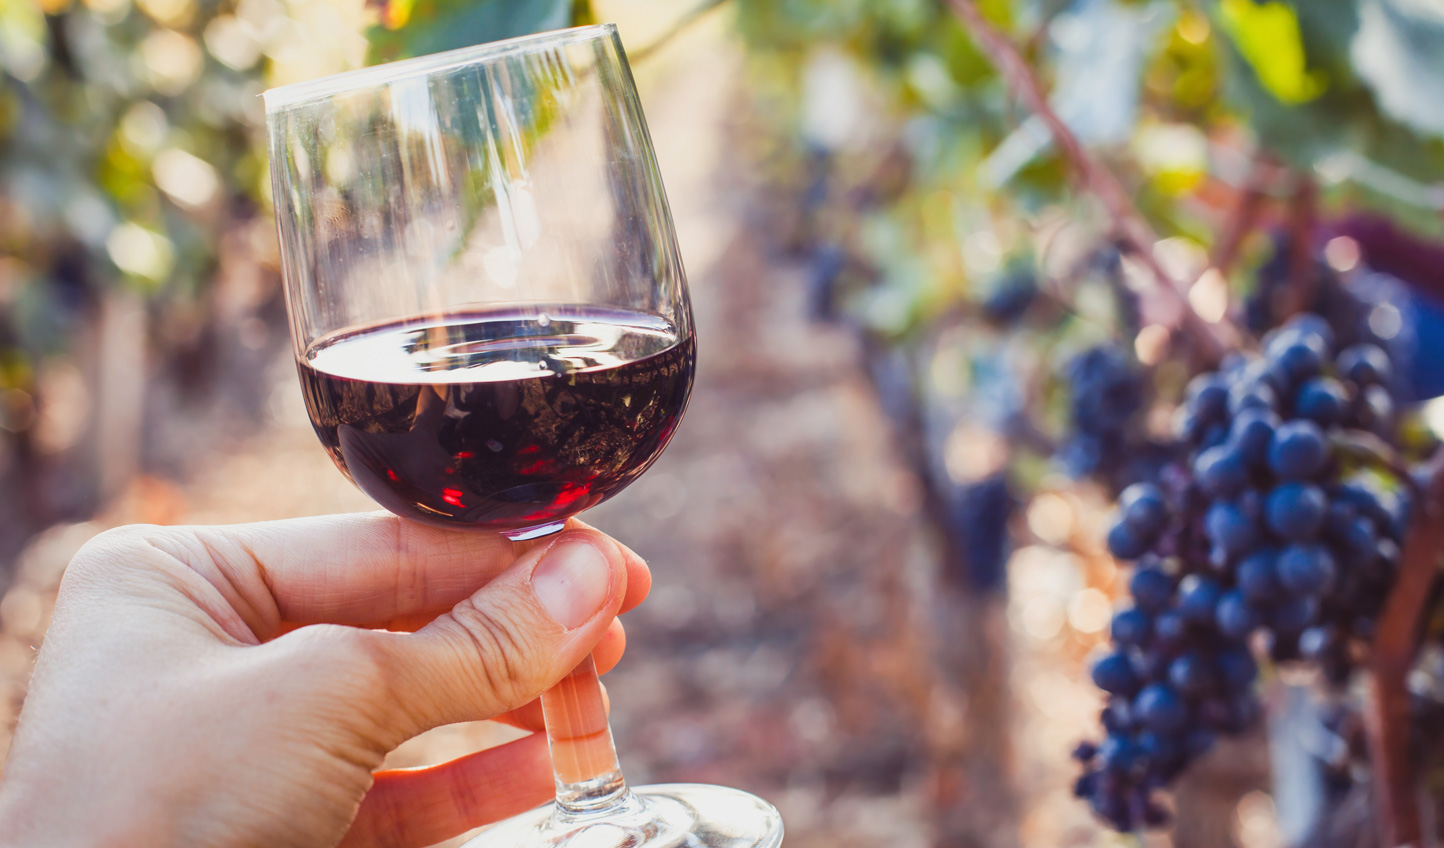 Sample rich red wines at local wineries